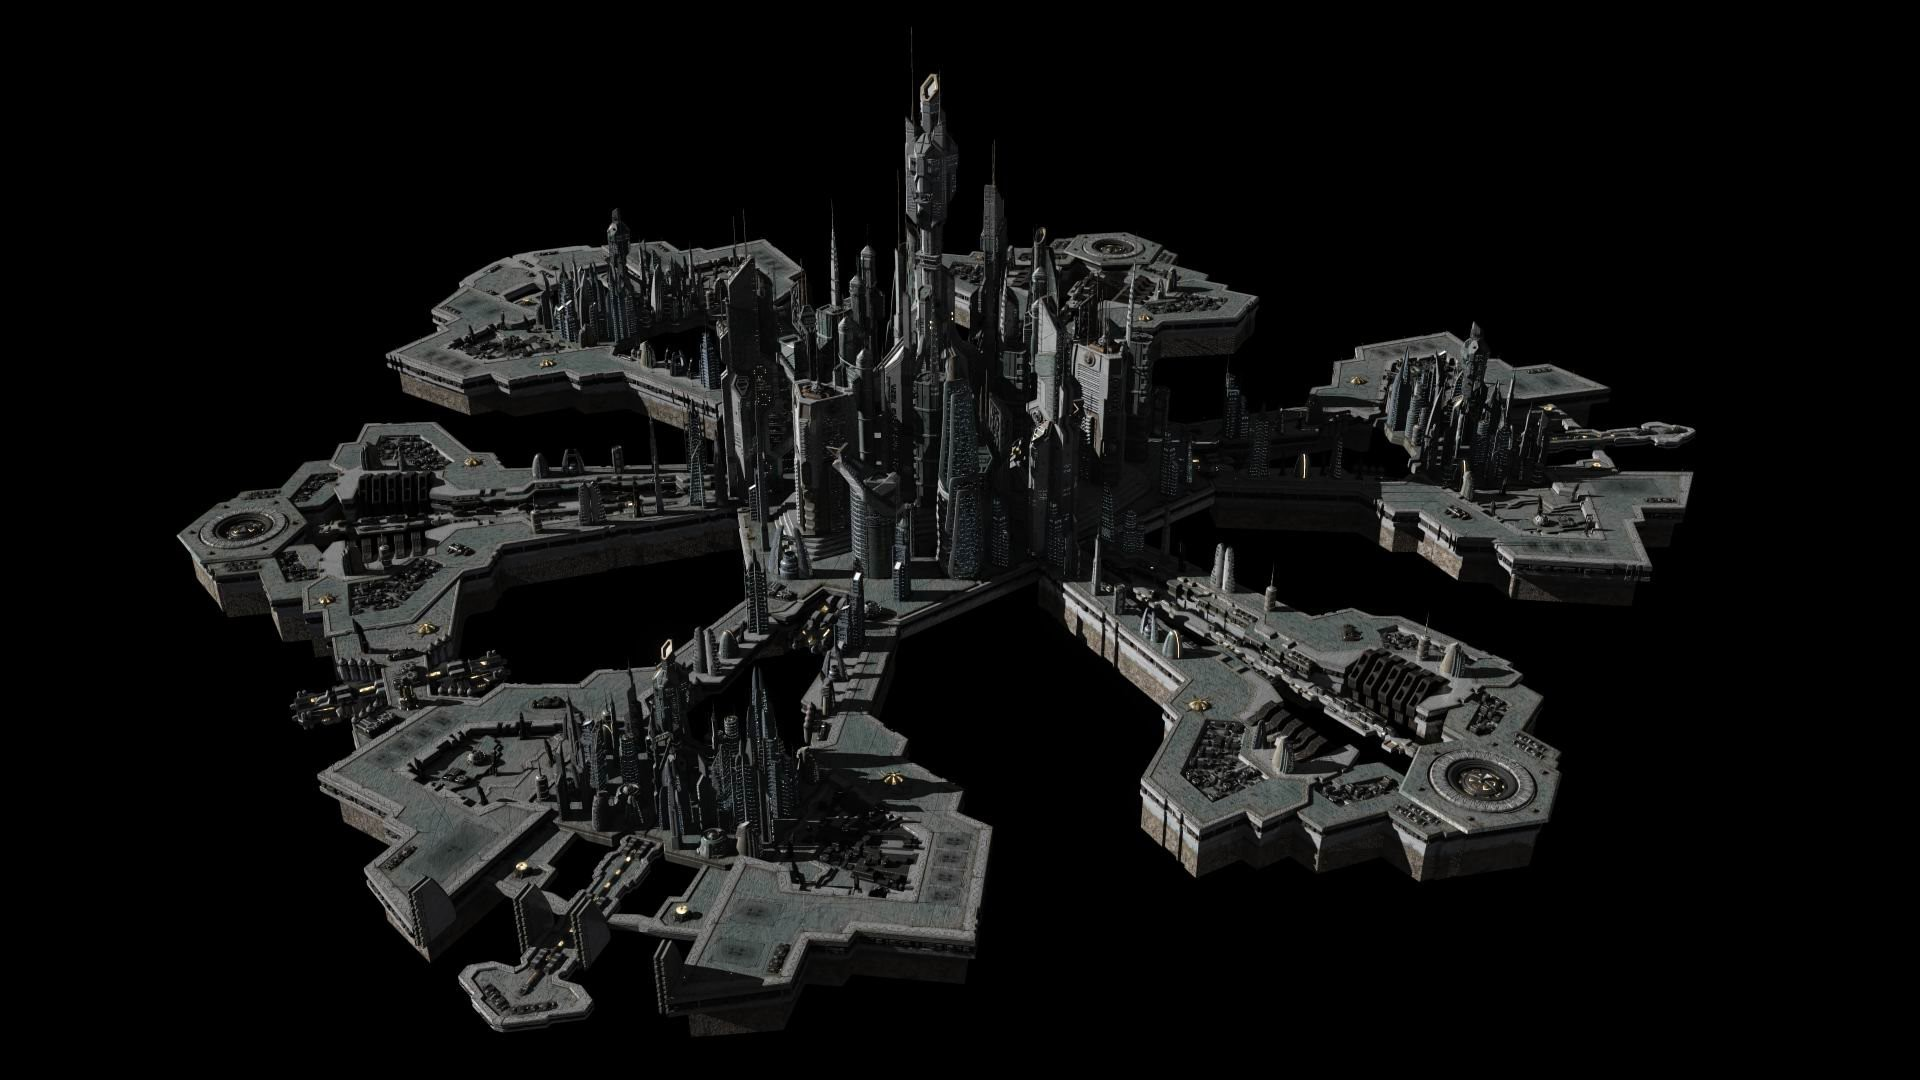 1920x1080 Stargate Atlantis City 460945